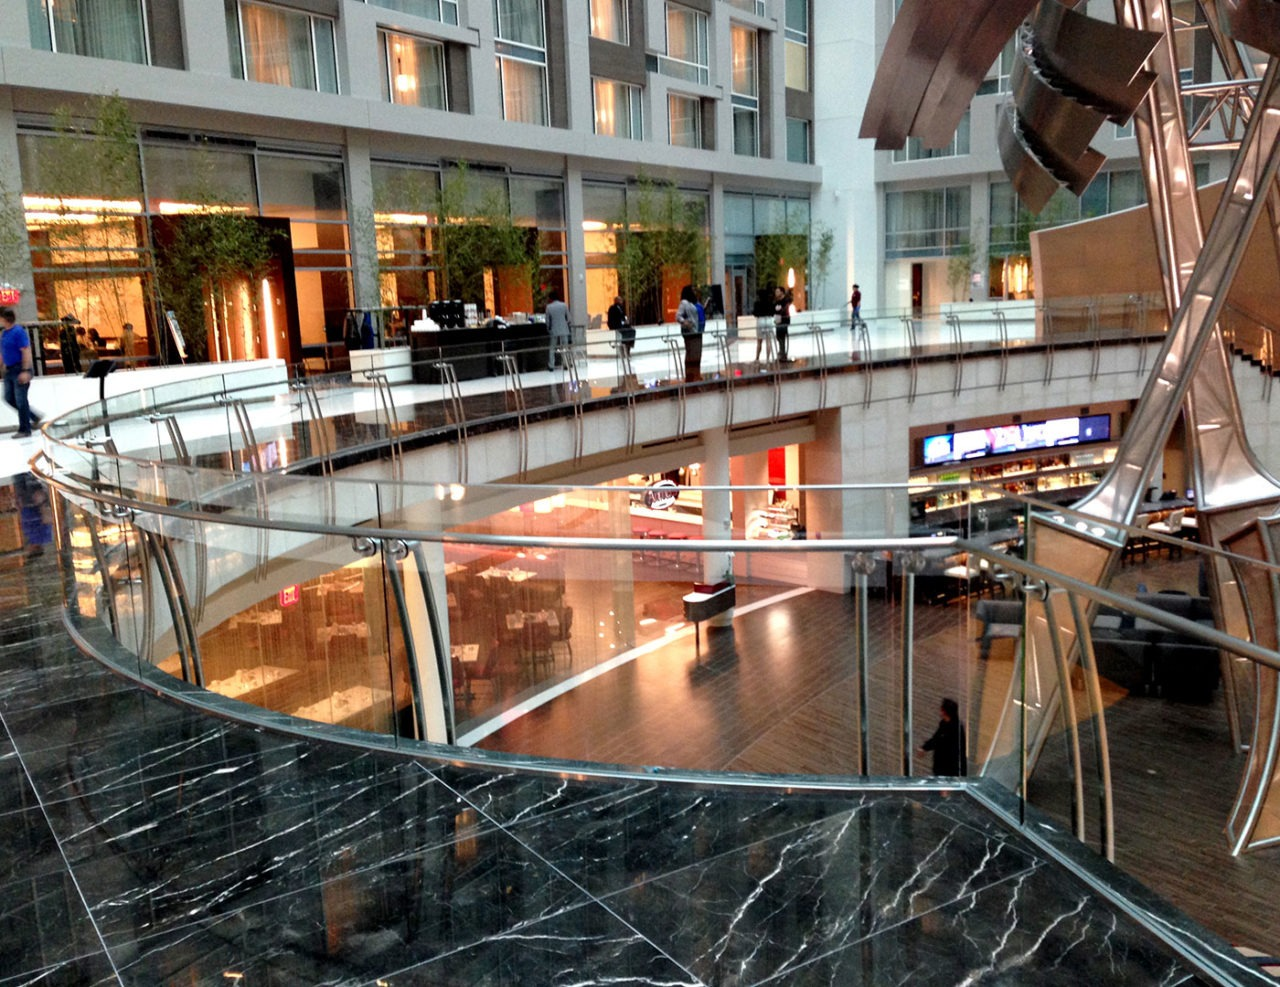 Custom Track Rail glass railing with stainless steel stanchions